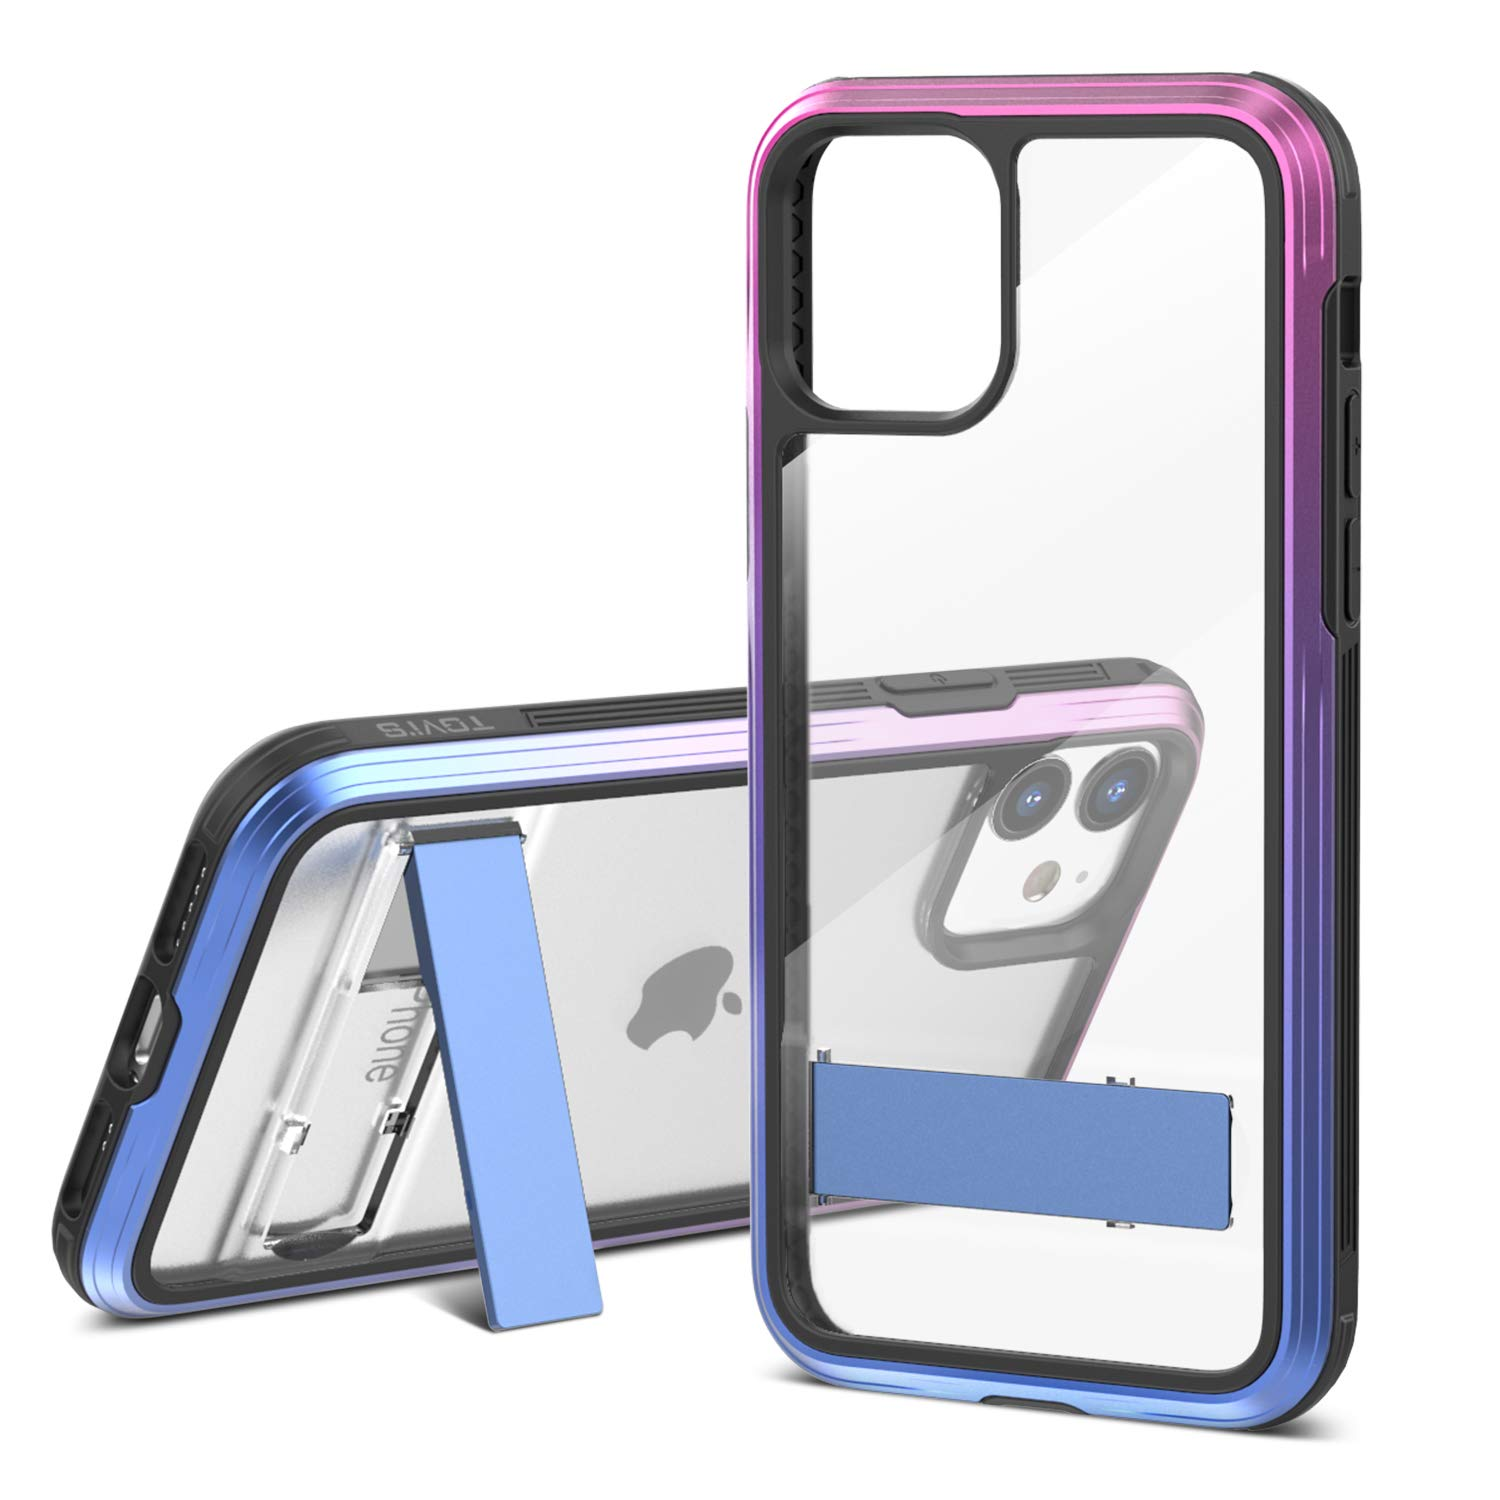 TGVi's Case for iPhone 11 Phone Case, Military Grade 12ft Drop Tested Protective Case with Kickstand, Support Wireless Charging, Shock-Proof, PC + TPU Material Case Compatible for iPhone 11, Neon